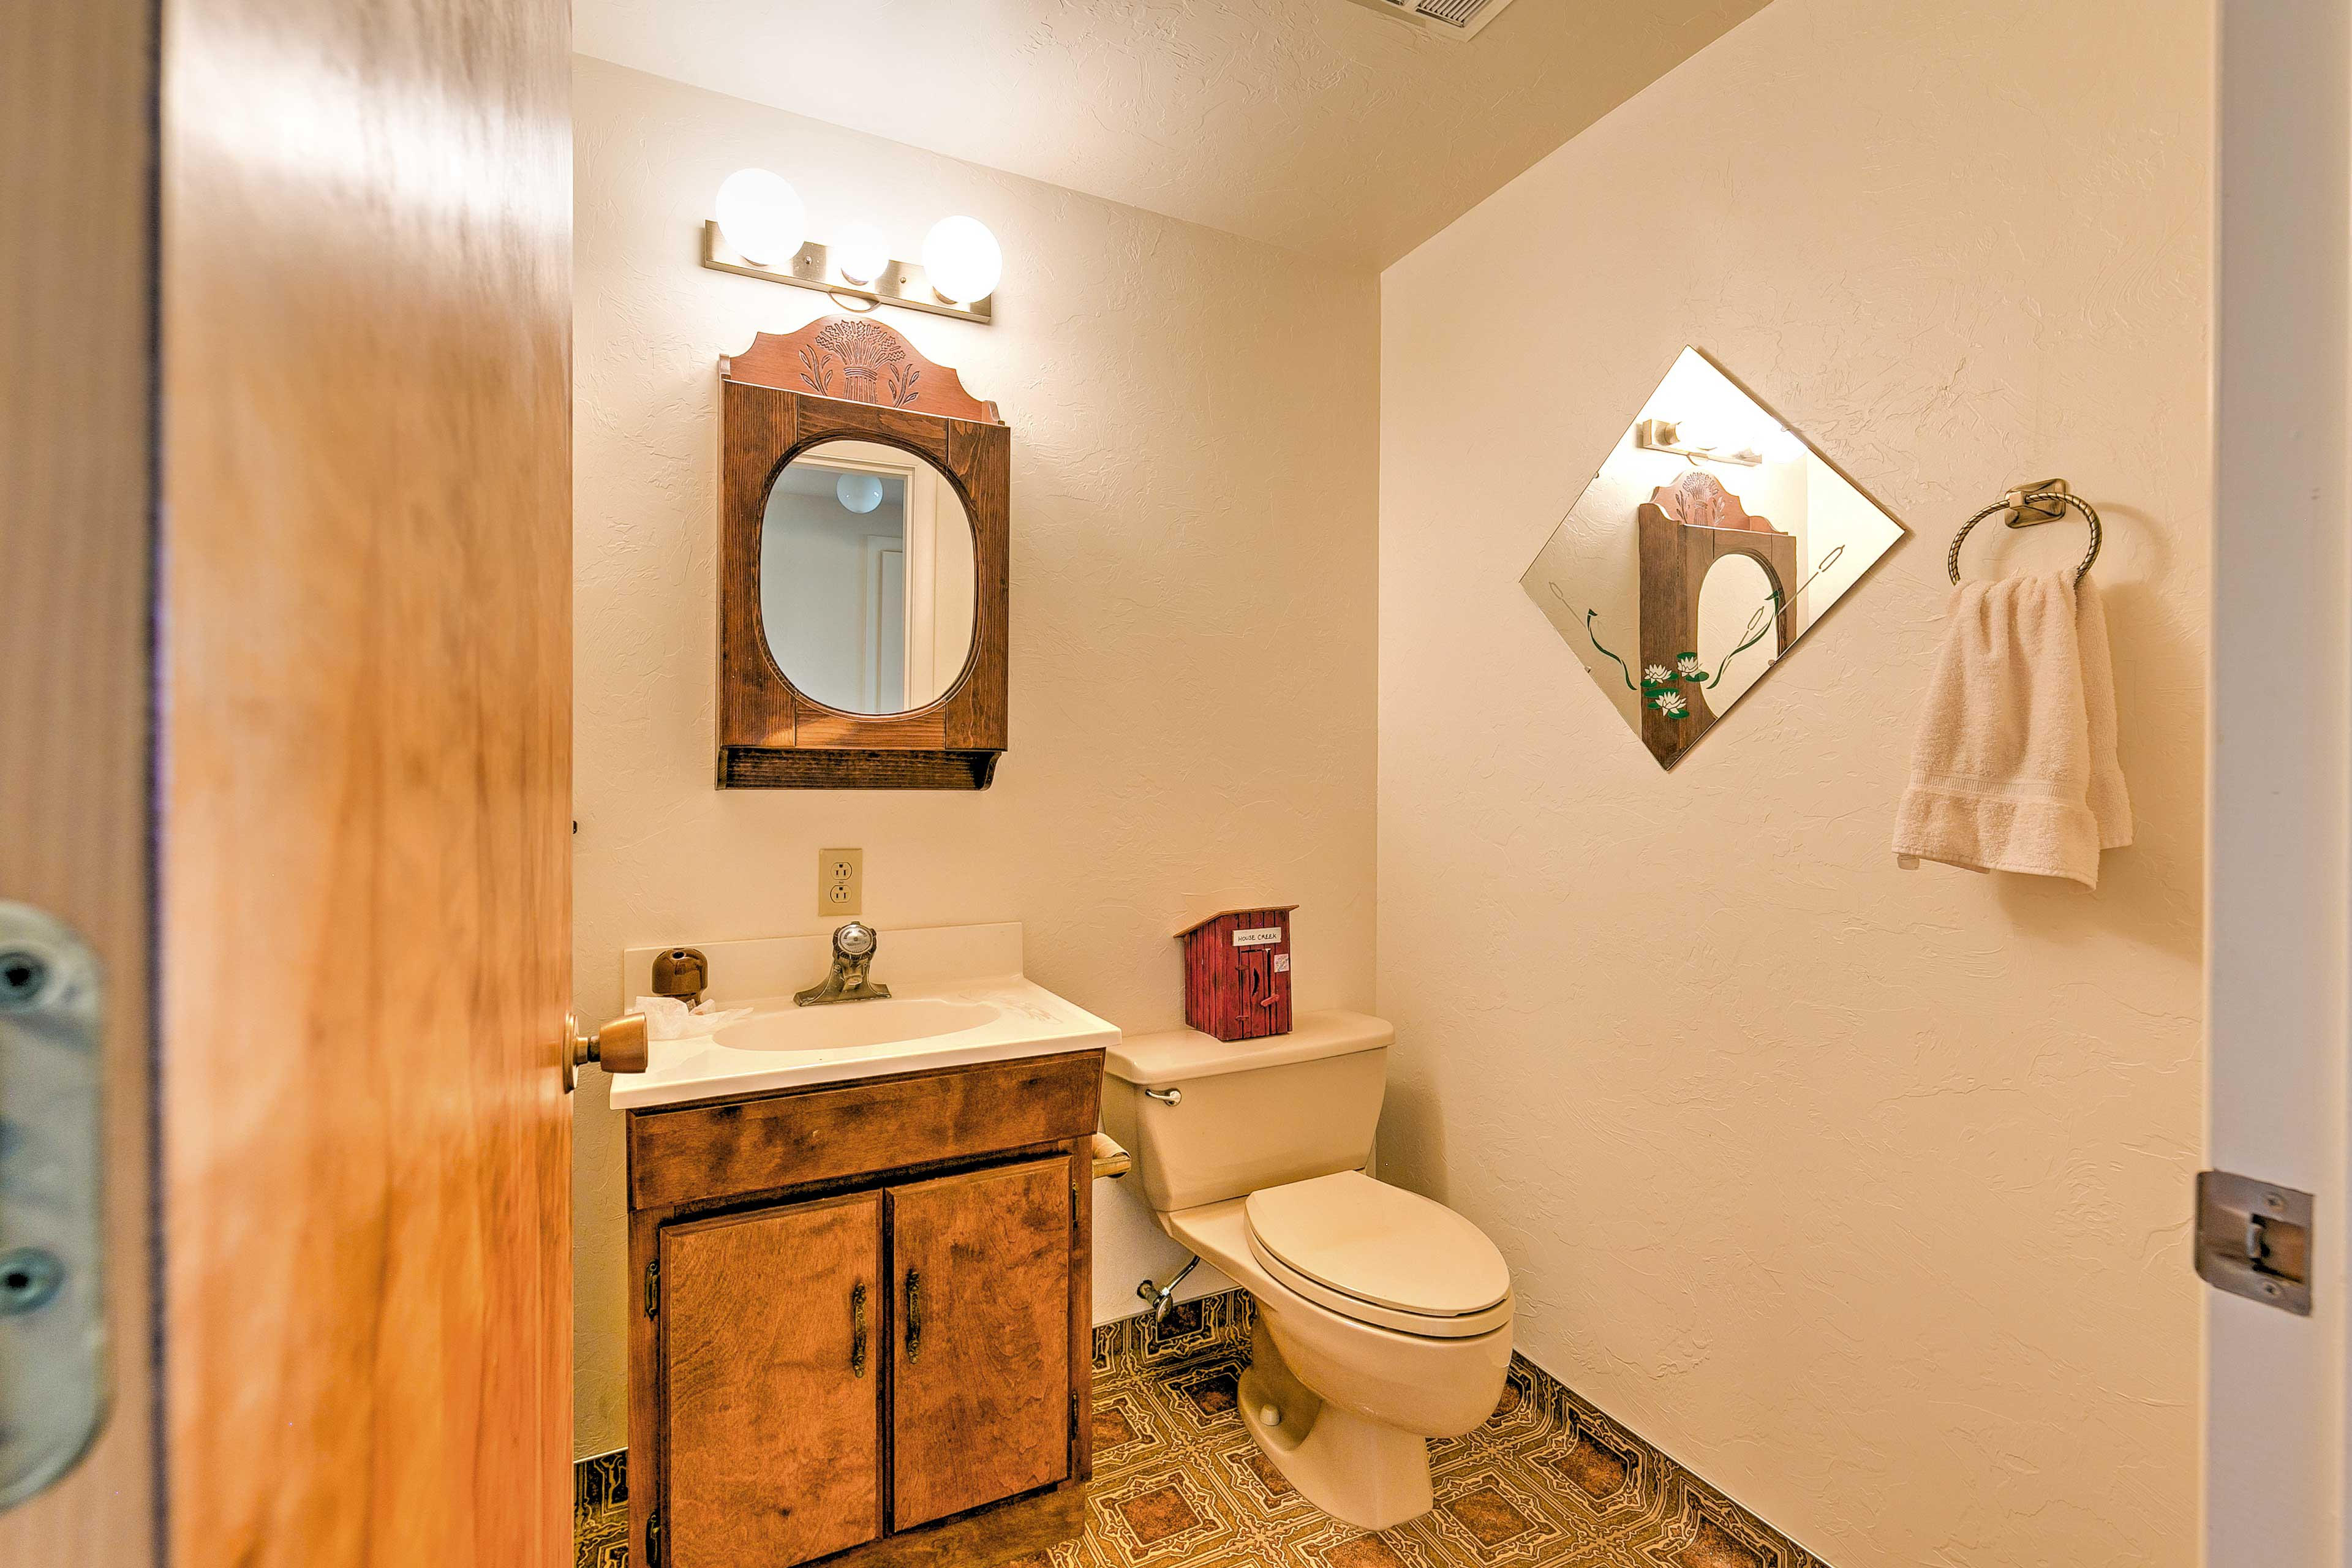 This home is equipped with 2.5 pristine bathrooms.